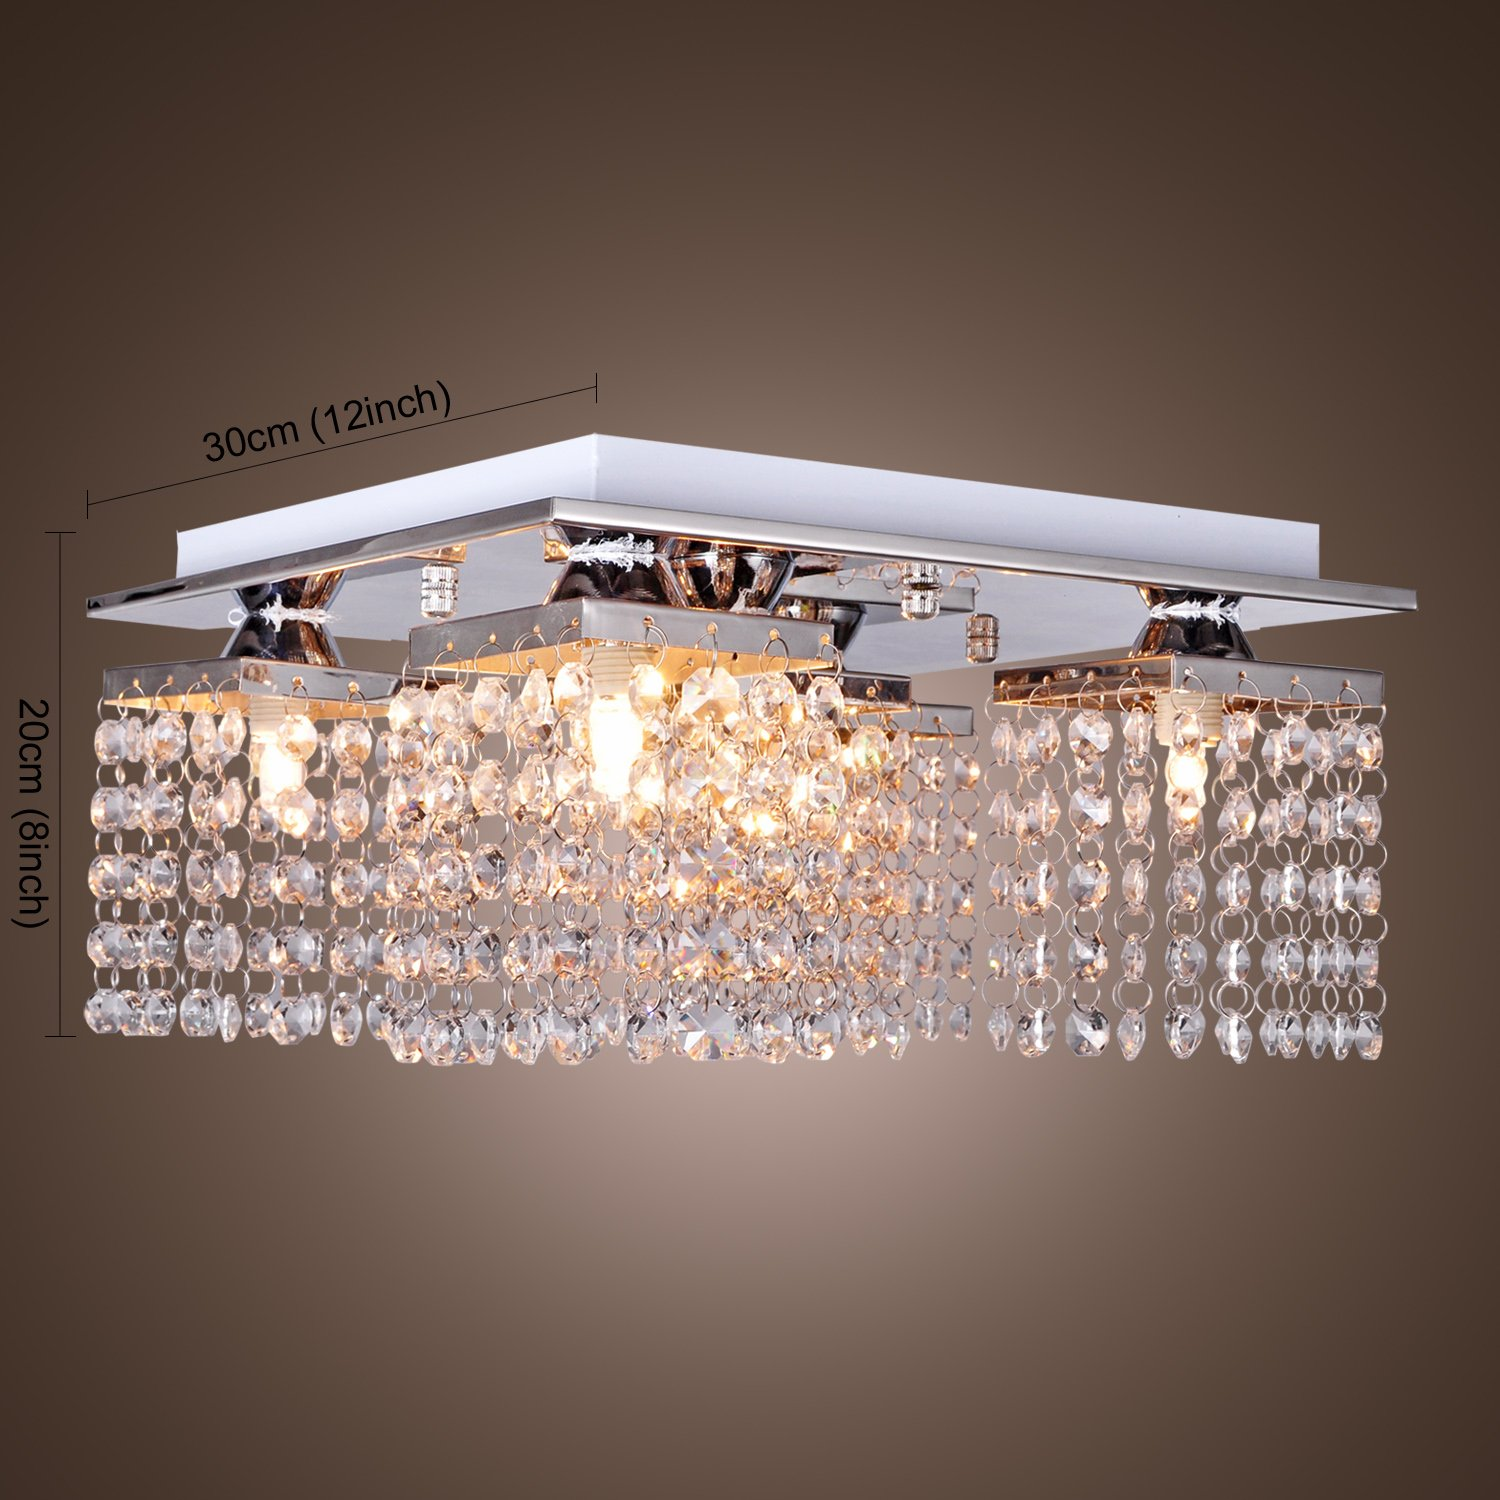 LightInTheBox Crystal Ceiling Light With 5 Lights Electroplated Finish Modern Flush Mount Fixture For Hallway Bedroom Living Room